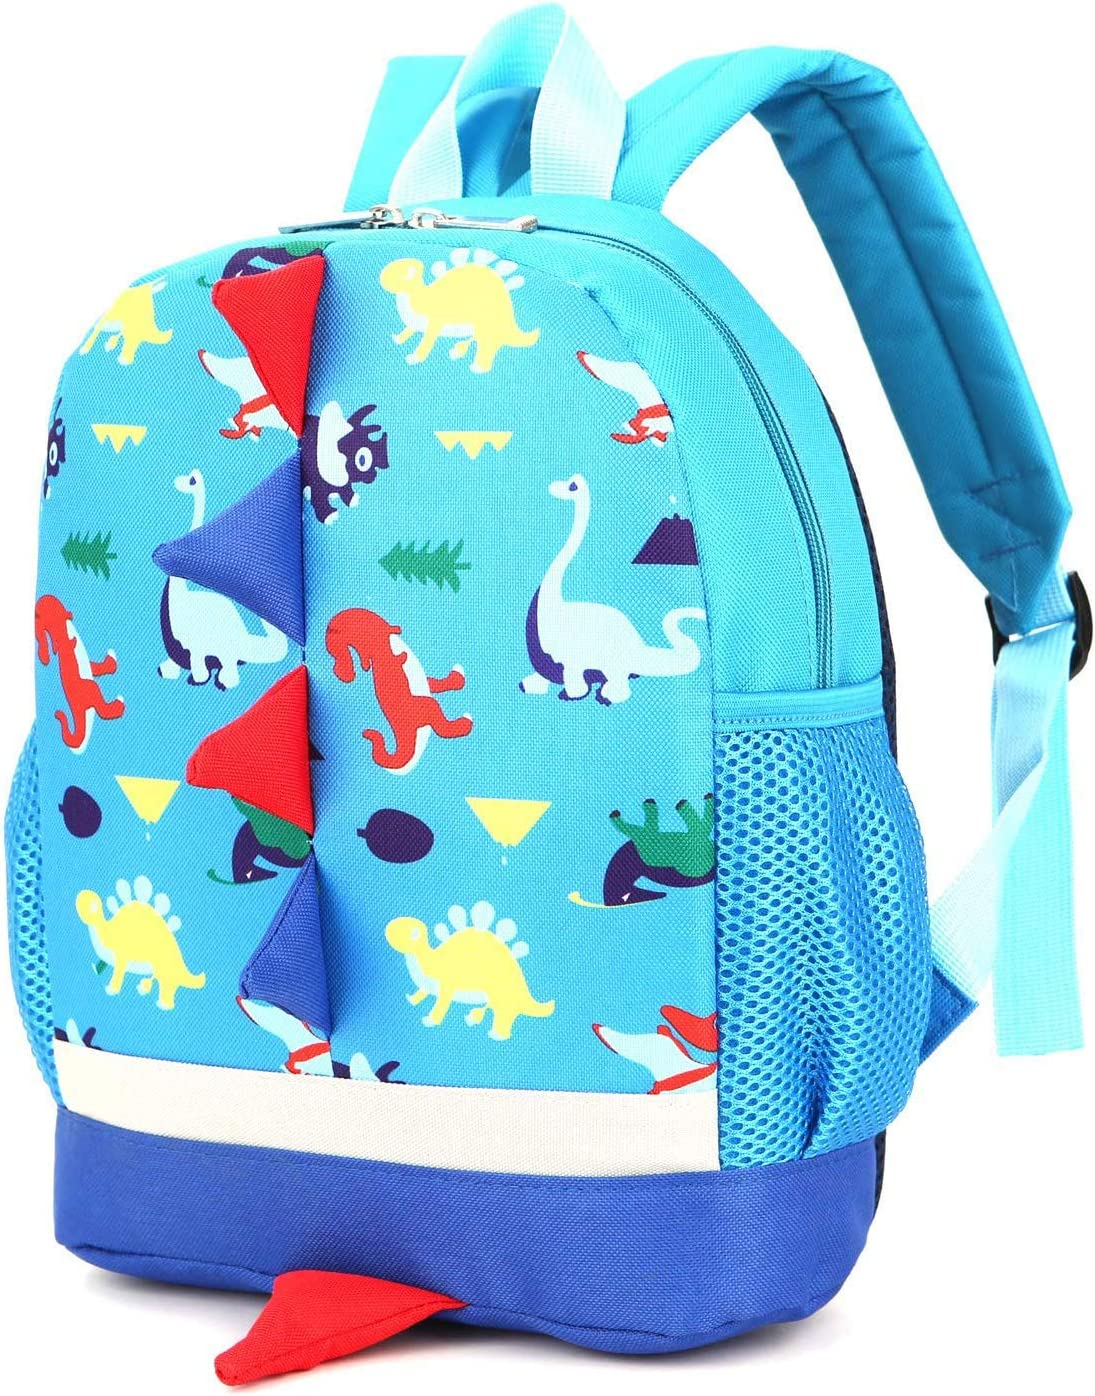 Top 11 Best Luggage For Kids (2020 Reviews & Buying Guide) 6